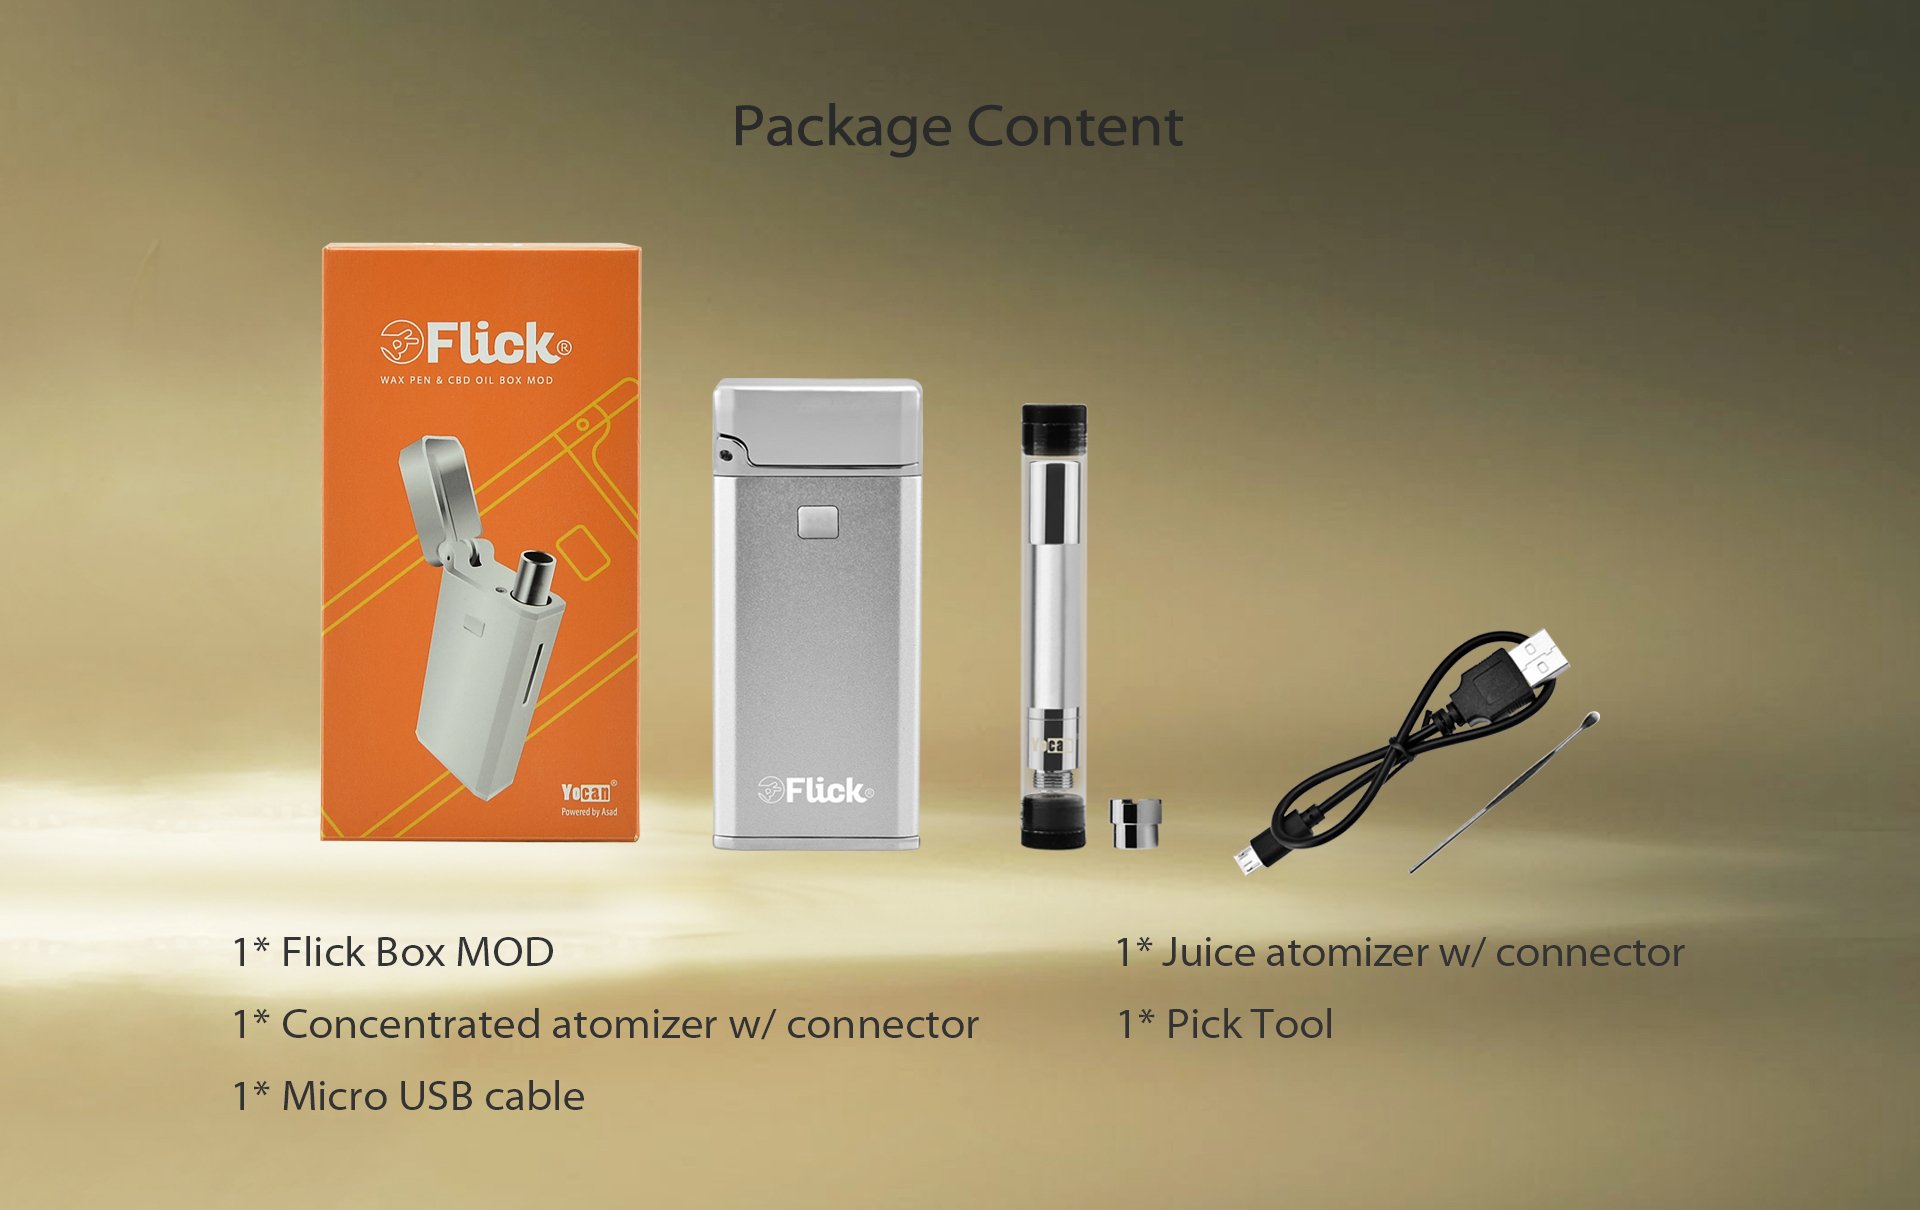 Yocan Flick package content.